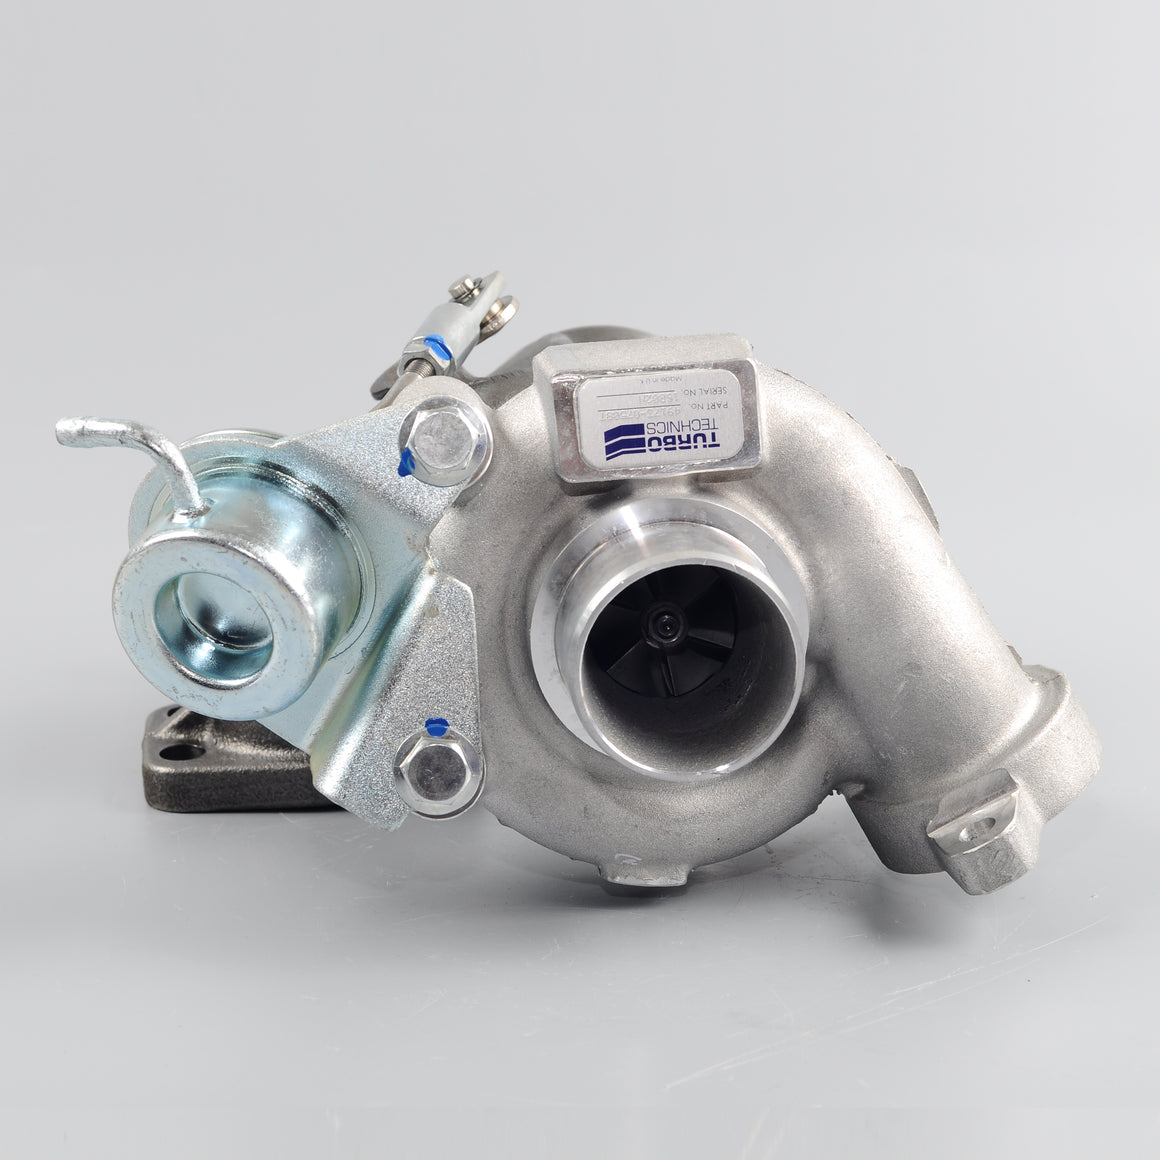 Turbo Technics turbo to suit Citroen Berlingo, Dispatch, Xsara; Peugeot 308 1.6L 2006-On